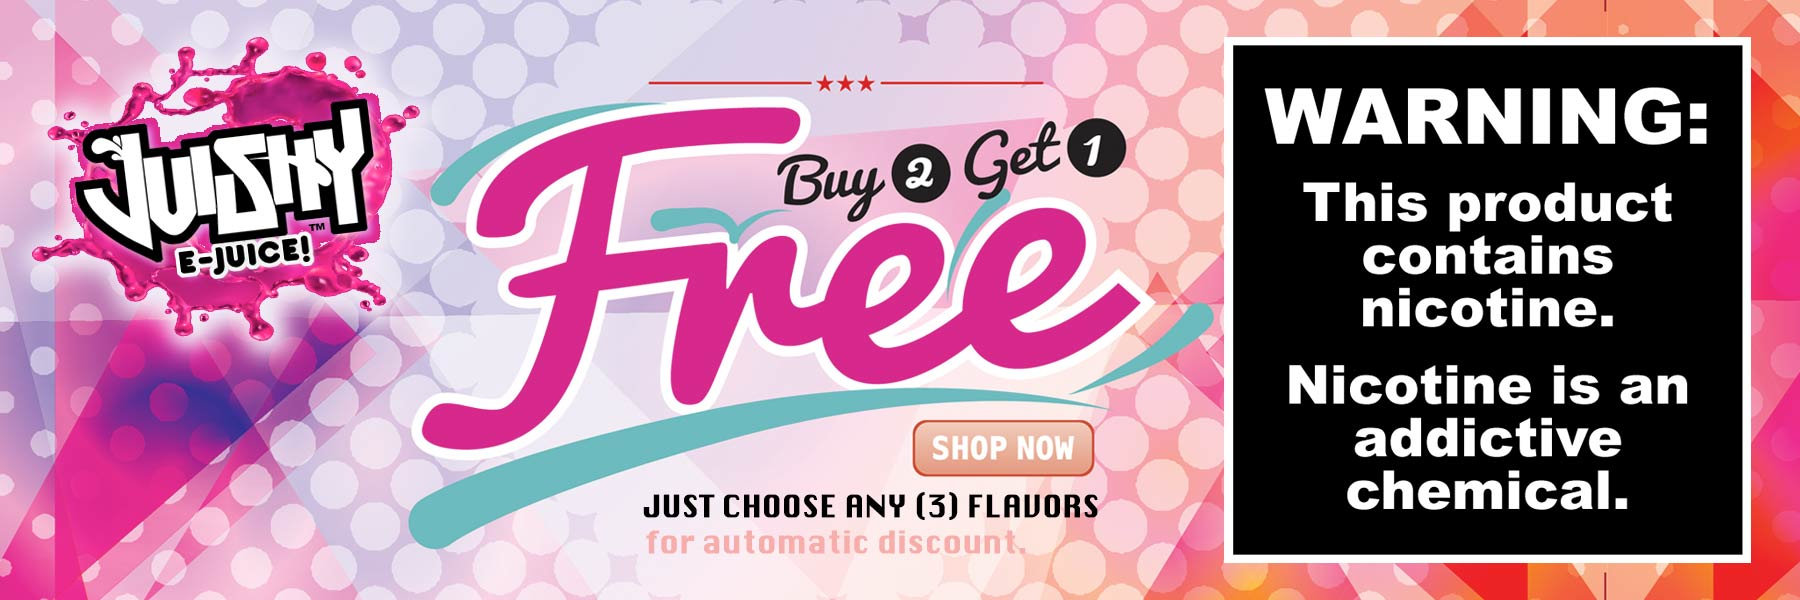 Buy 2 Get 1 Free Juishy E-Juice